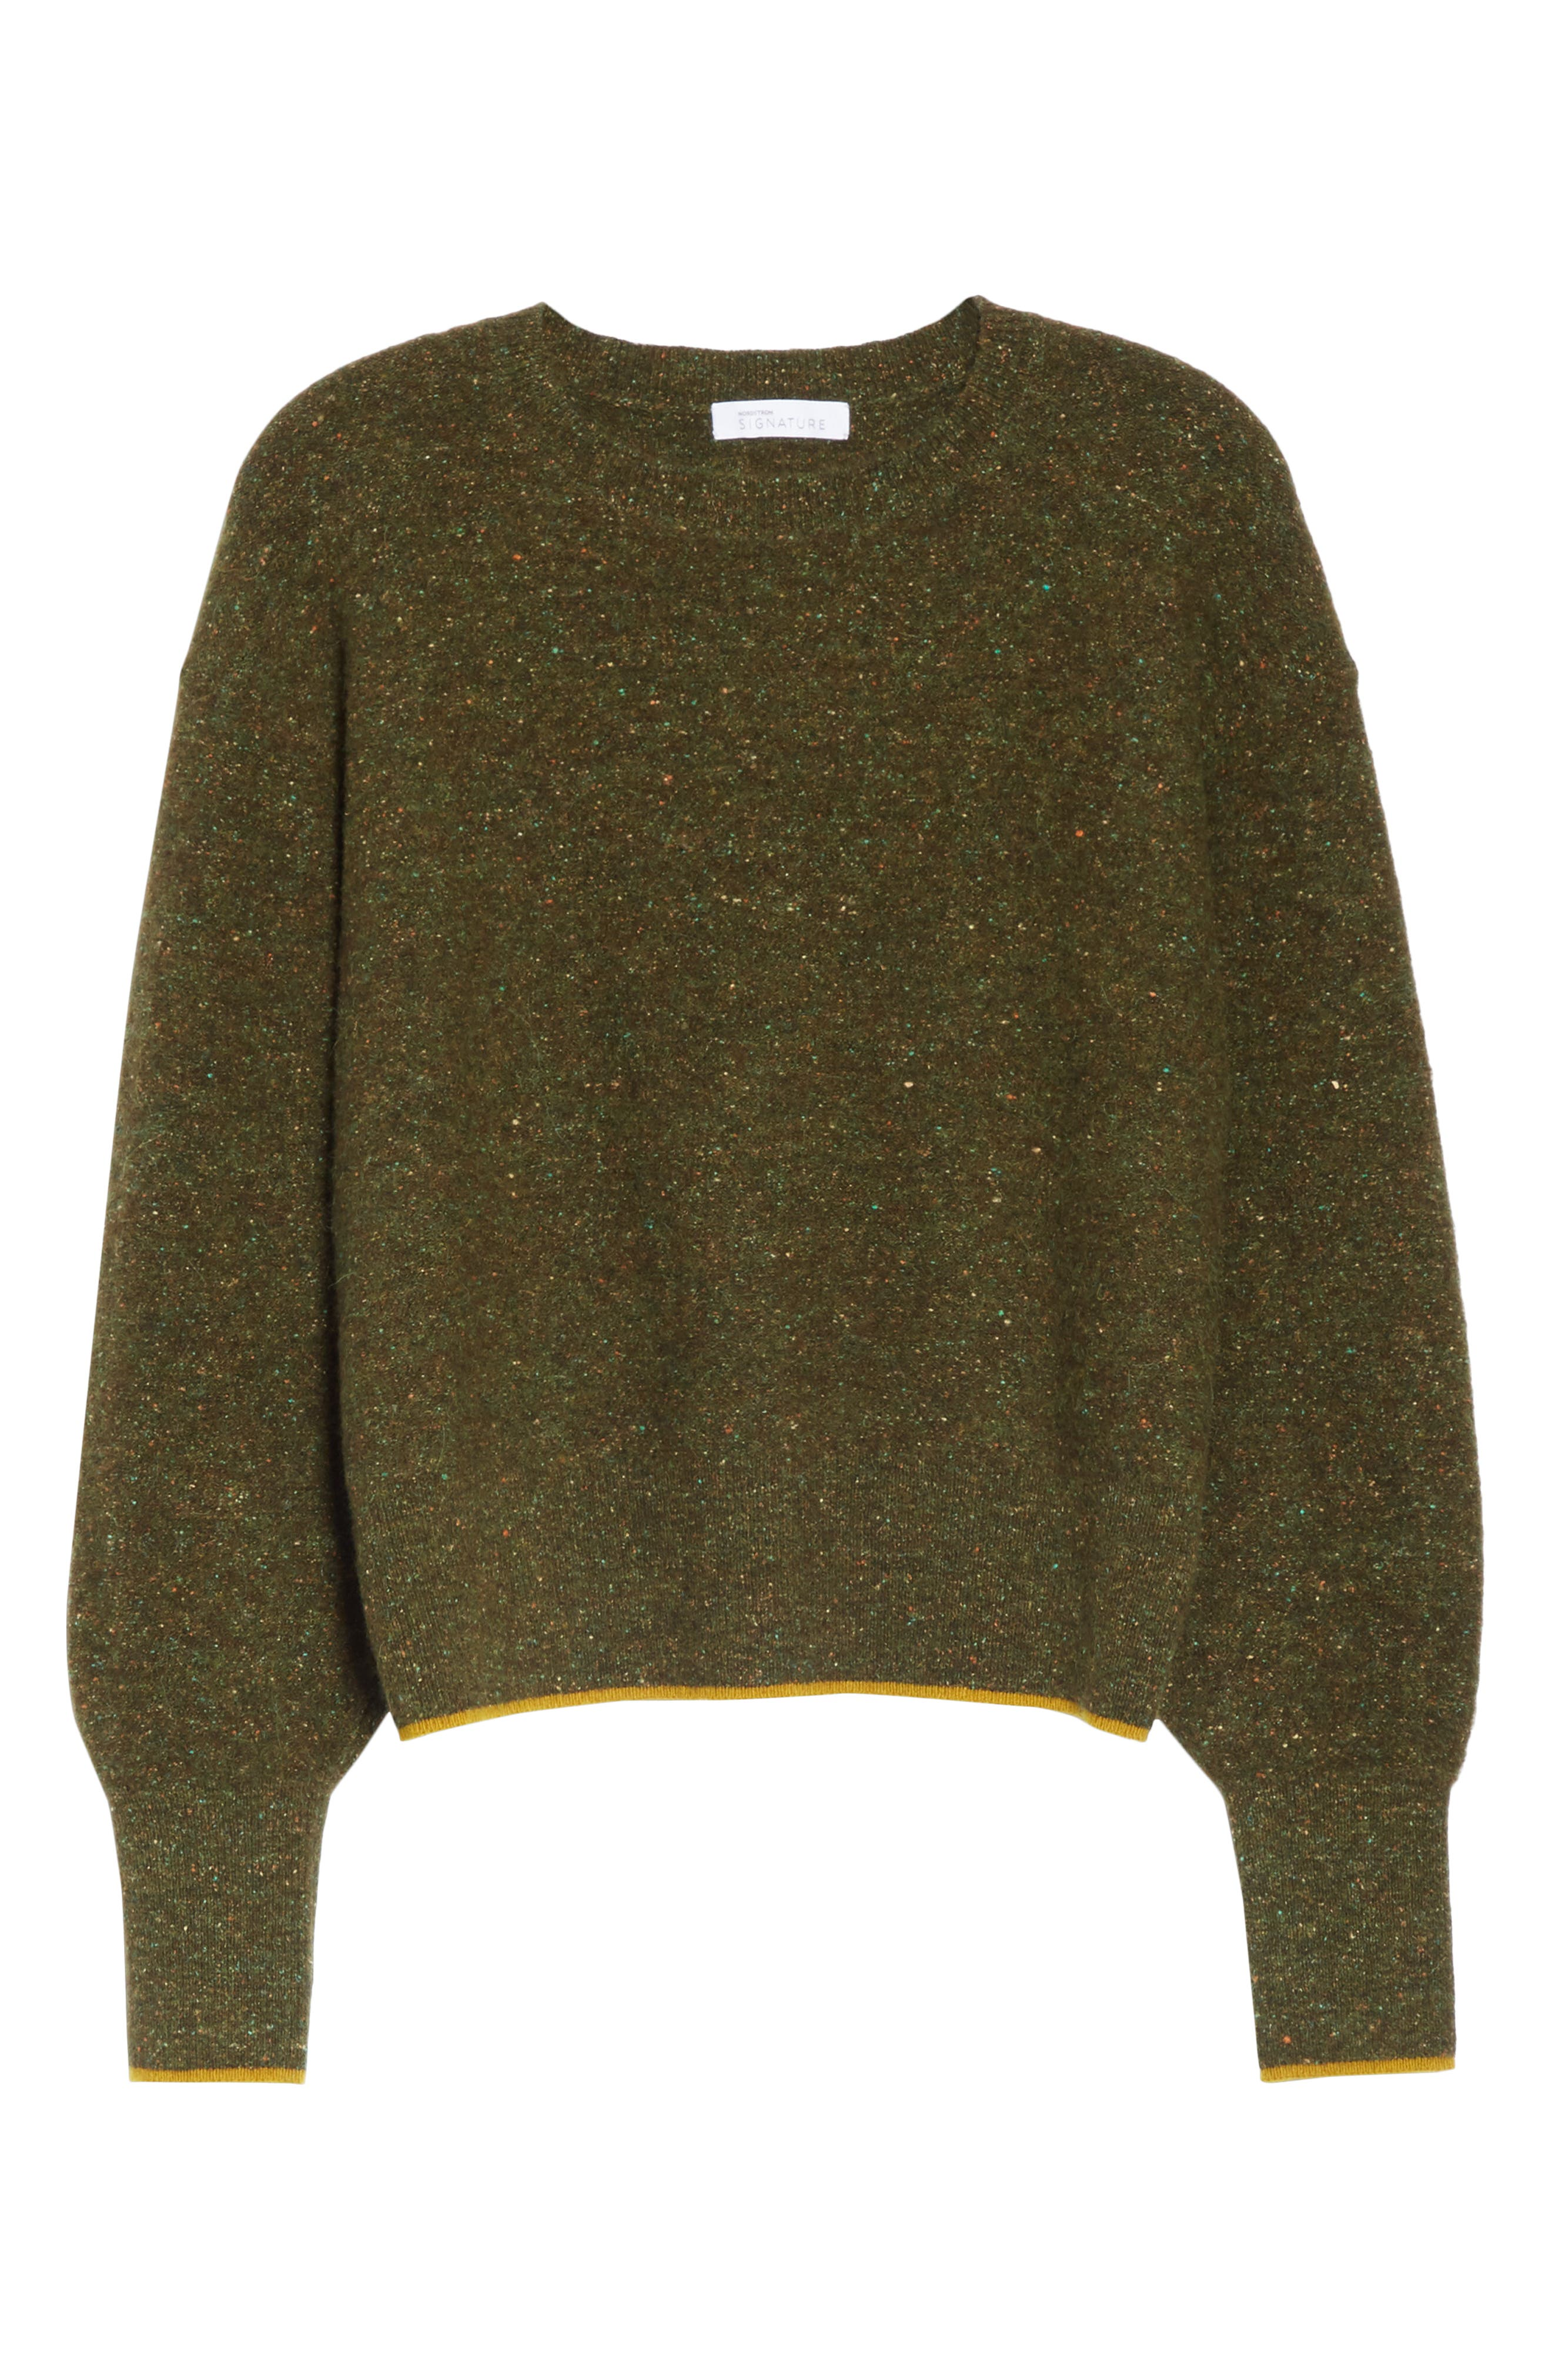 Tweed Knit Sweater,                             Alternate thumbnail 6, color,                             310